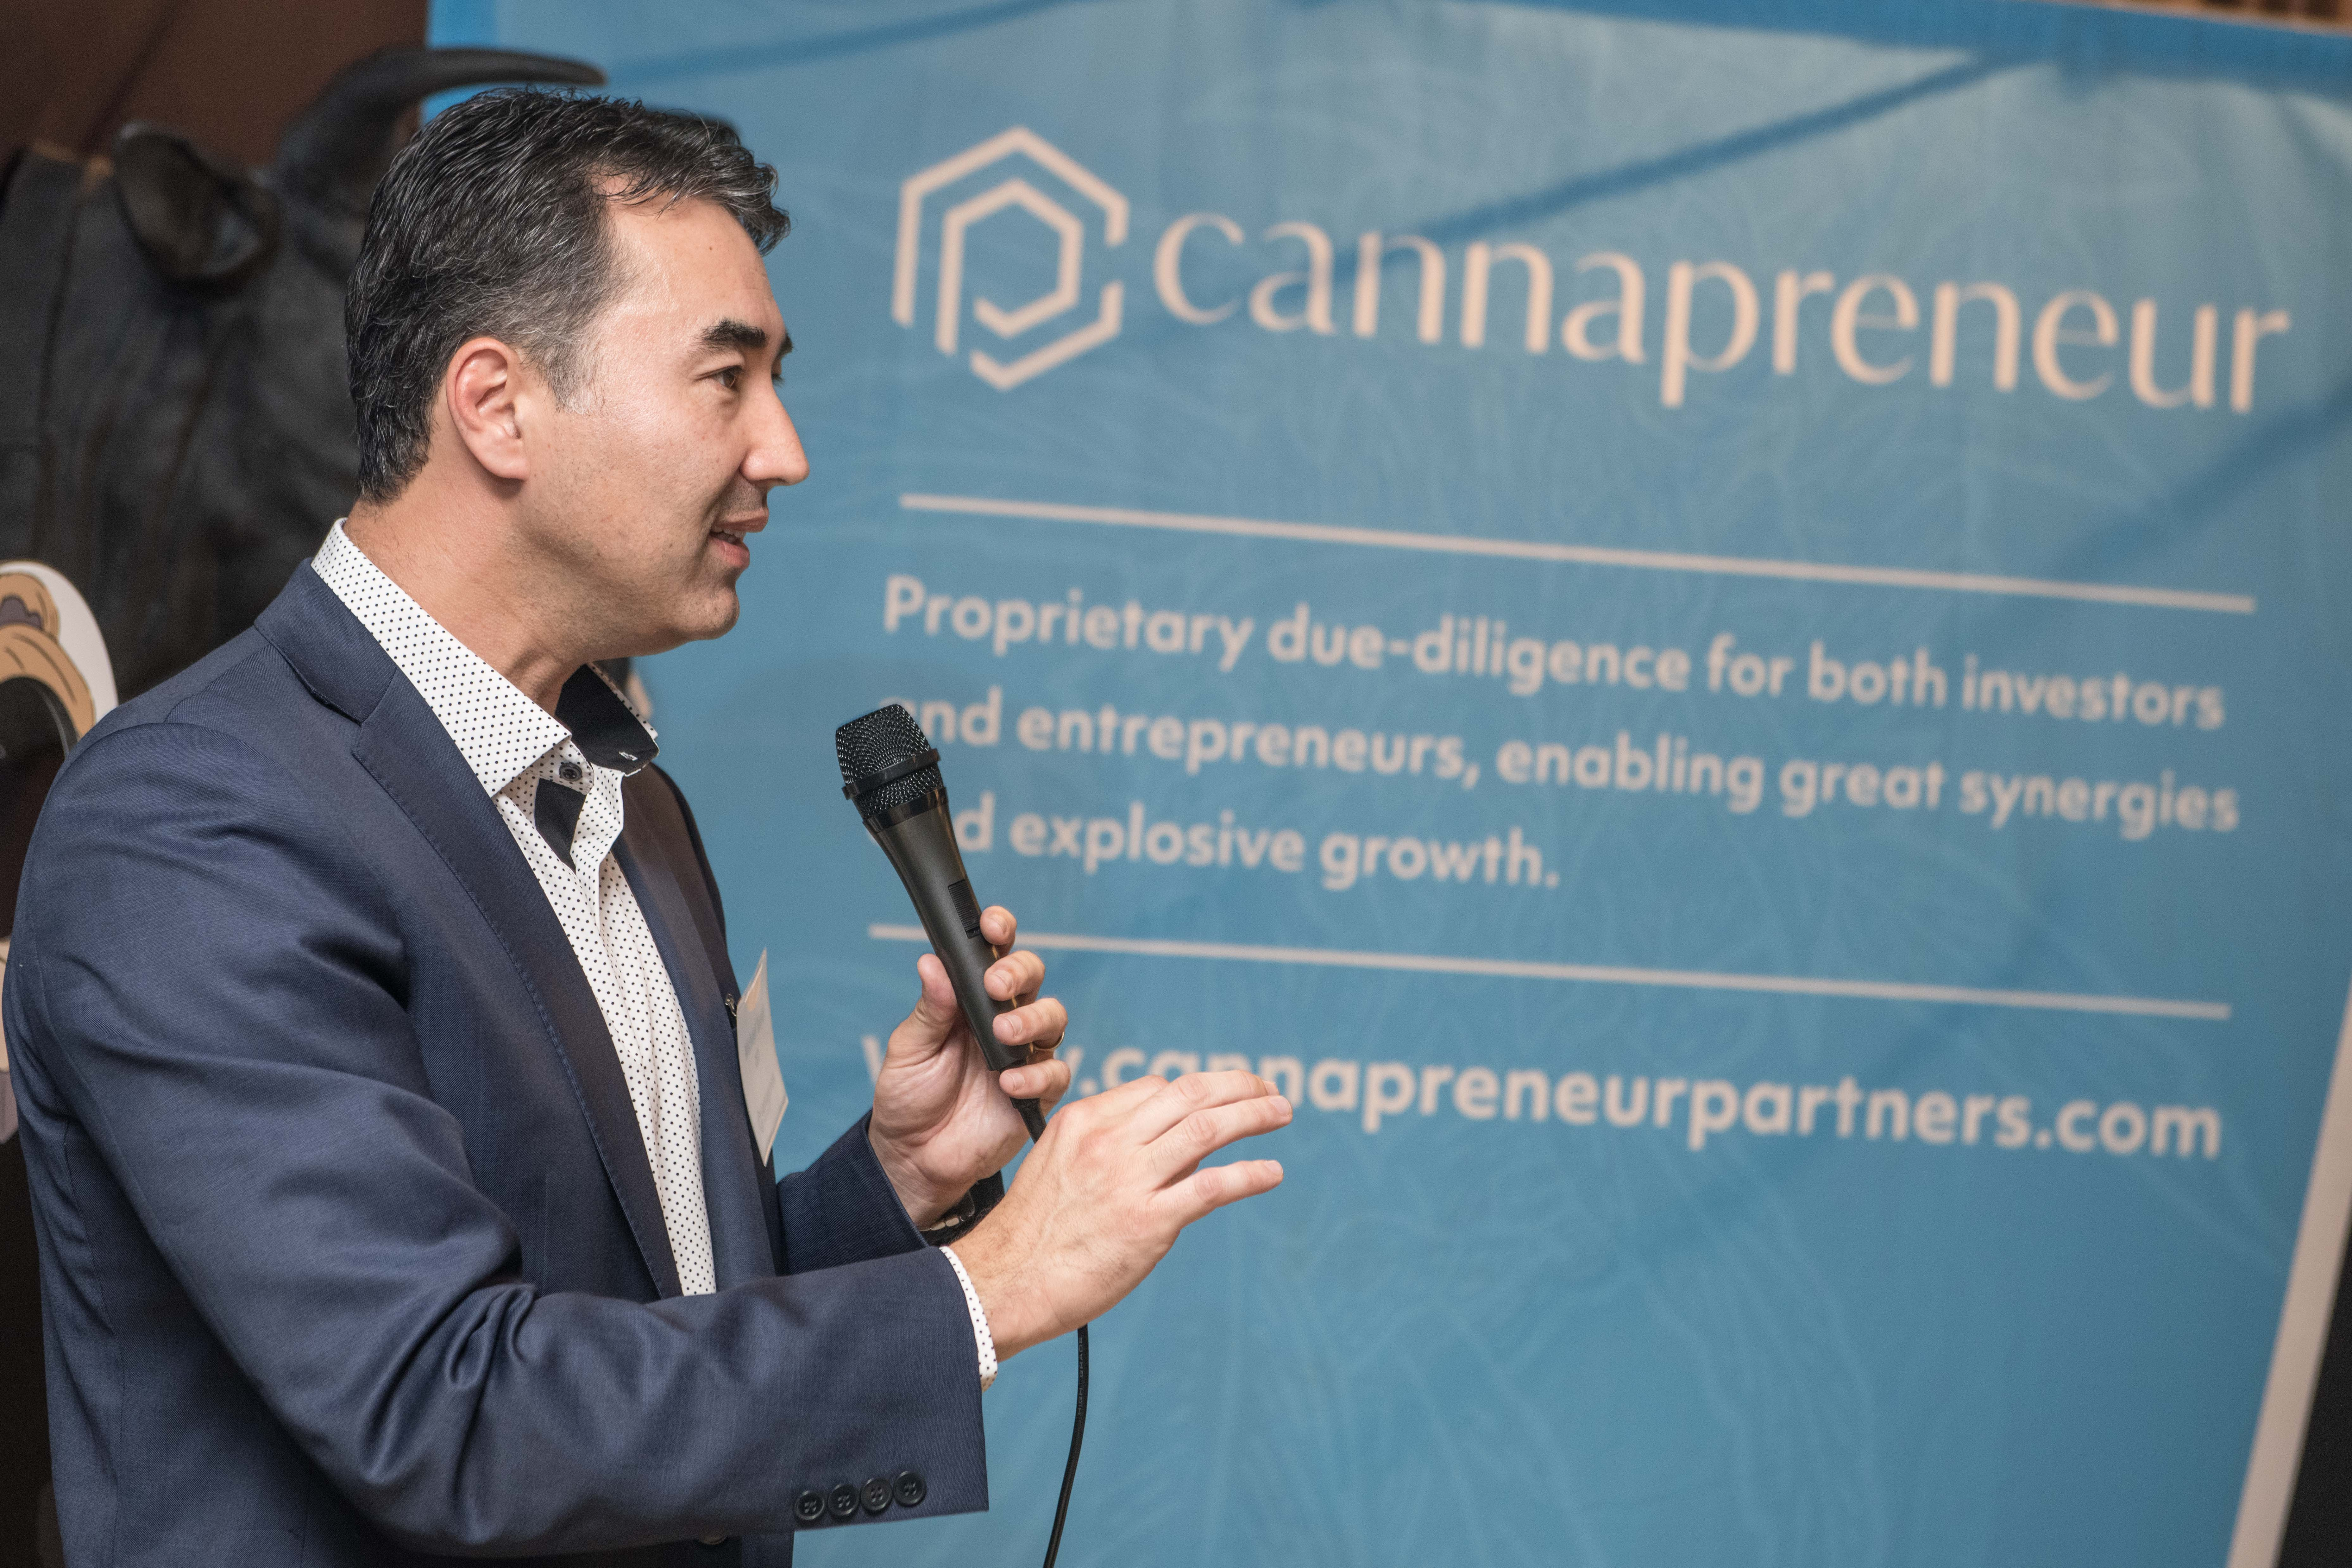 PODCAST: A PROFITS-WITH-PURPOSE CANNABIS INVESTING APPROACH WITH CANNAPRENEUR PARTNERS